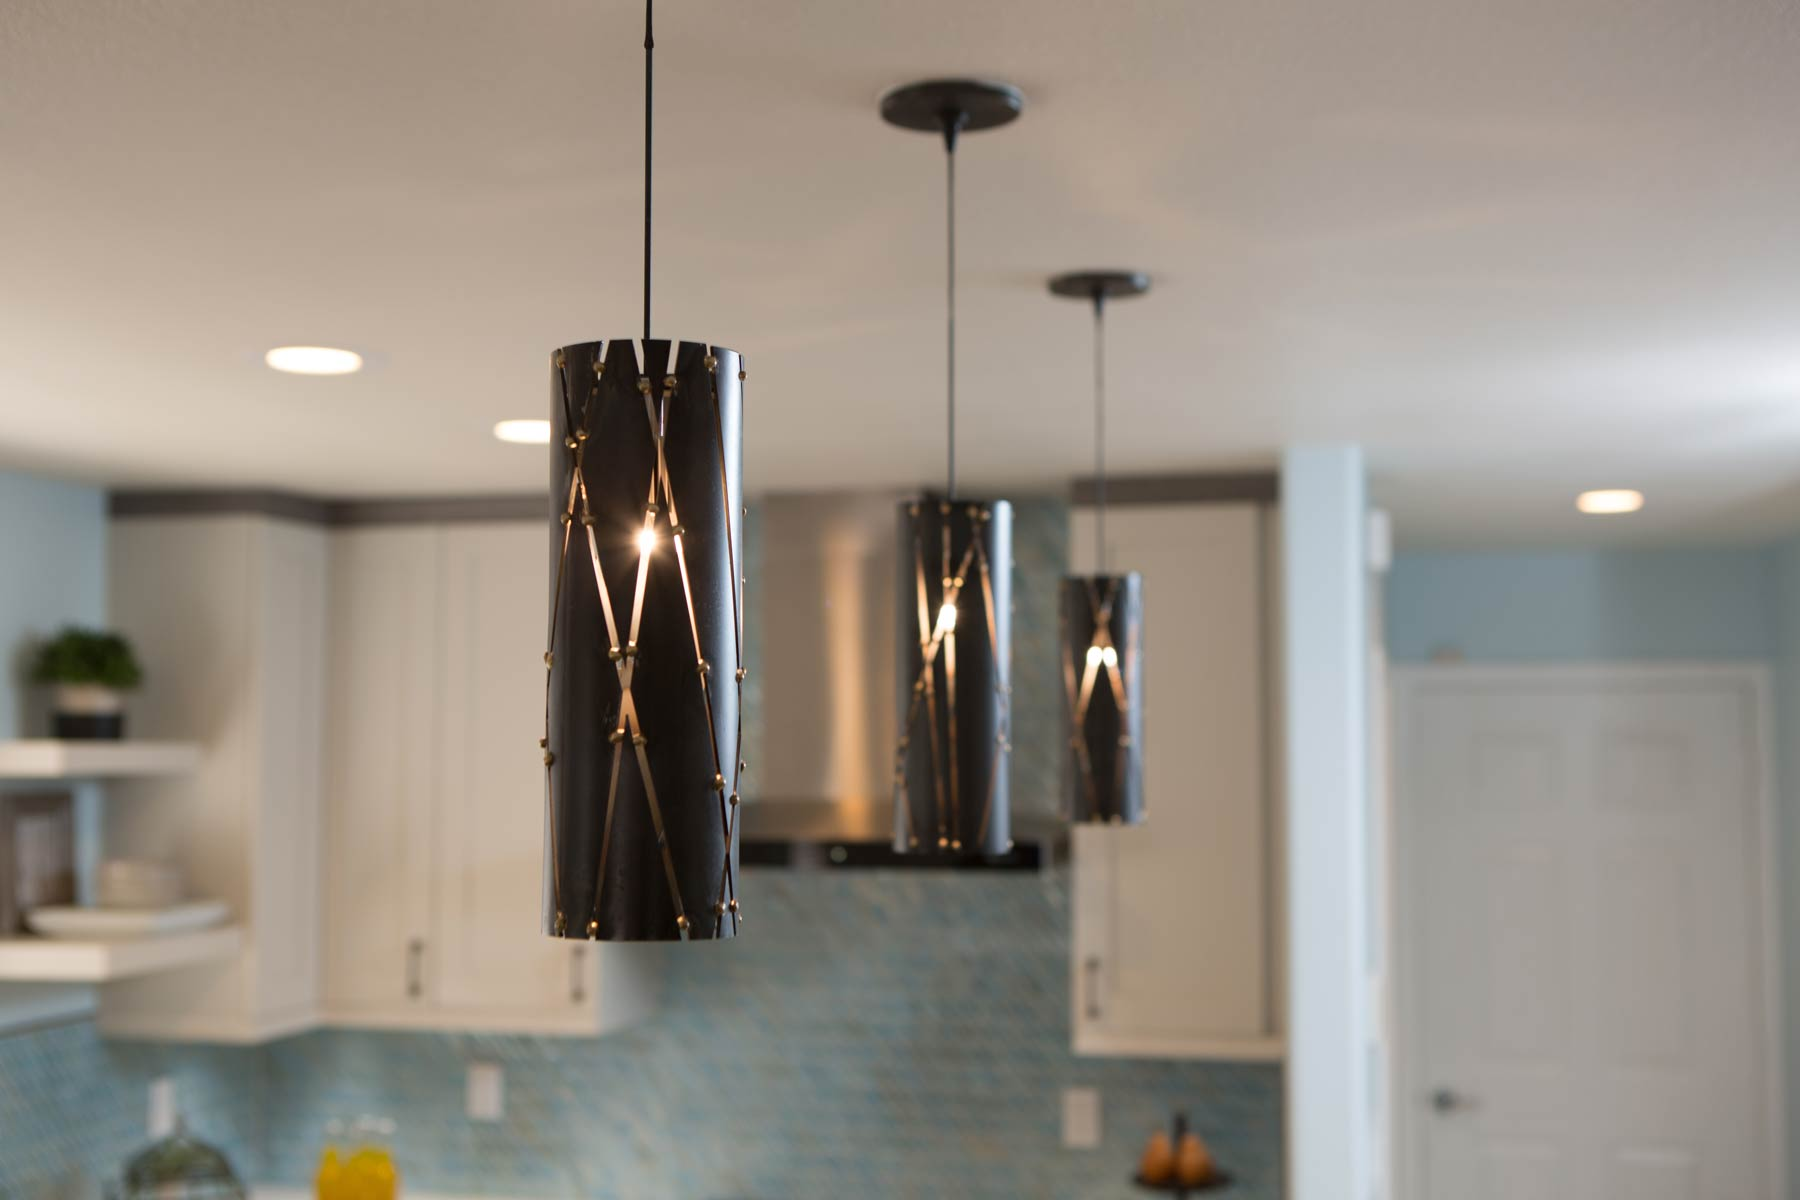 New kitchen light fixtures